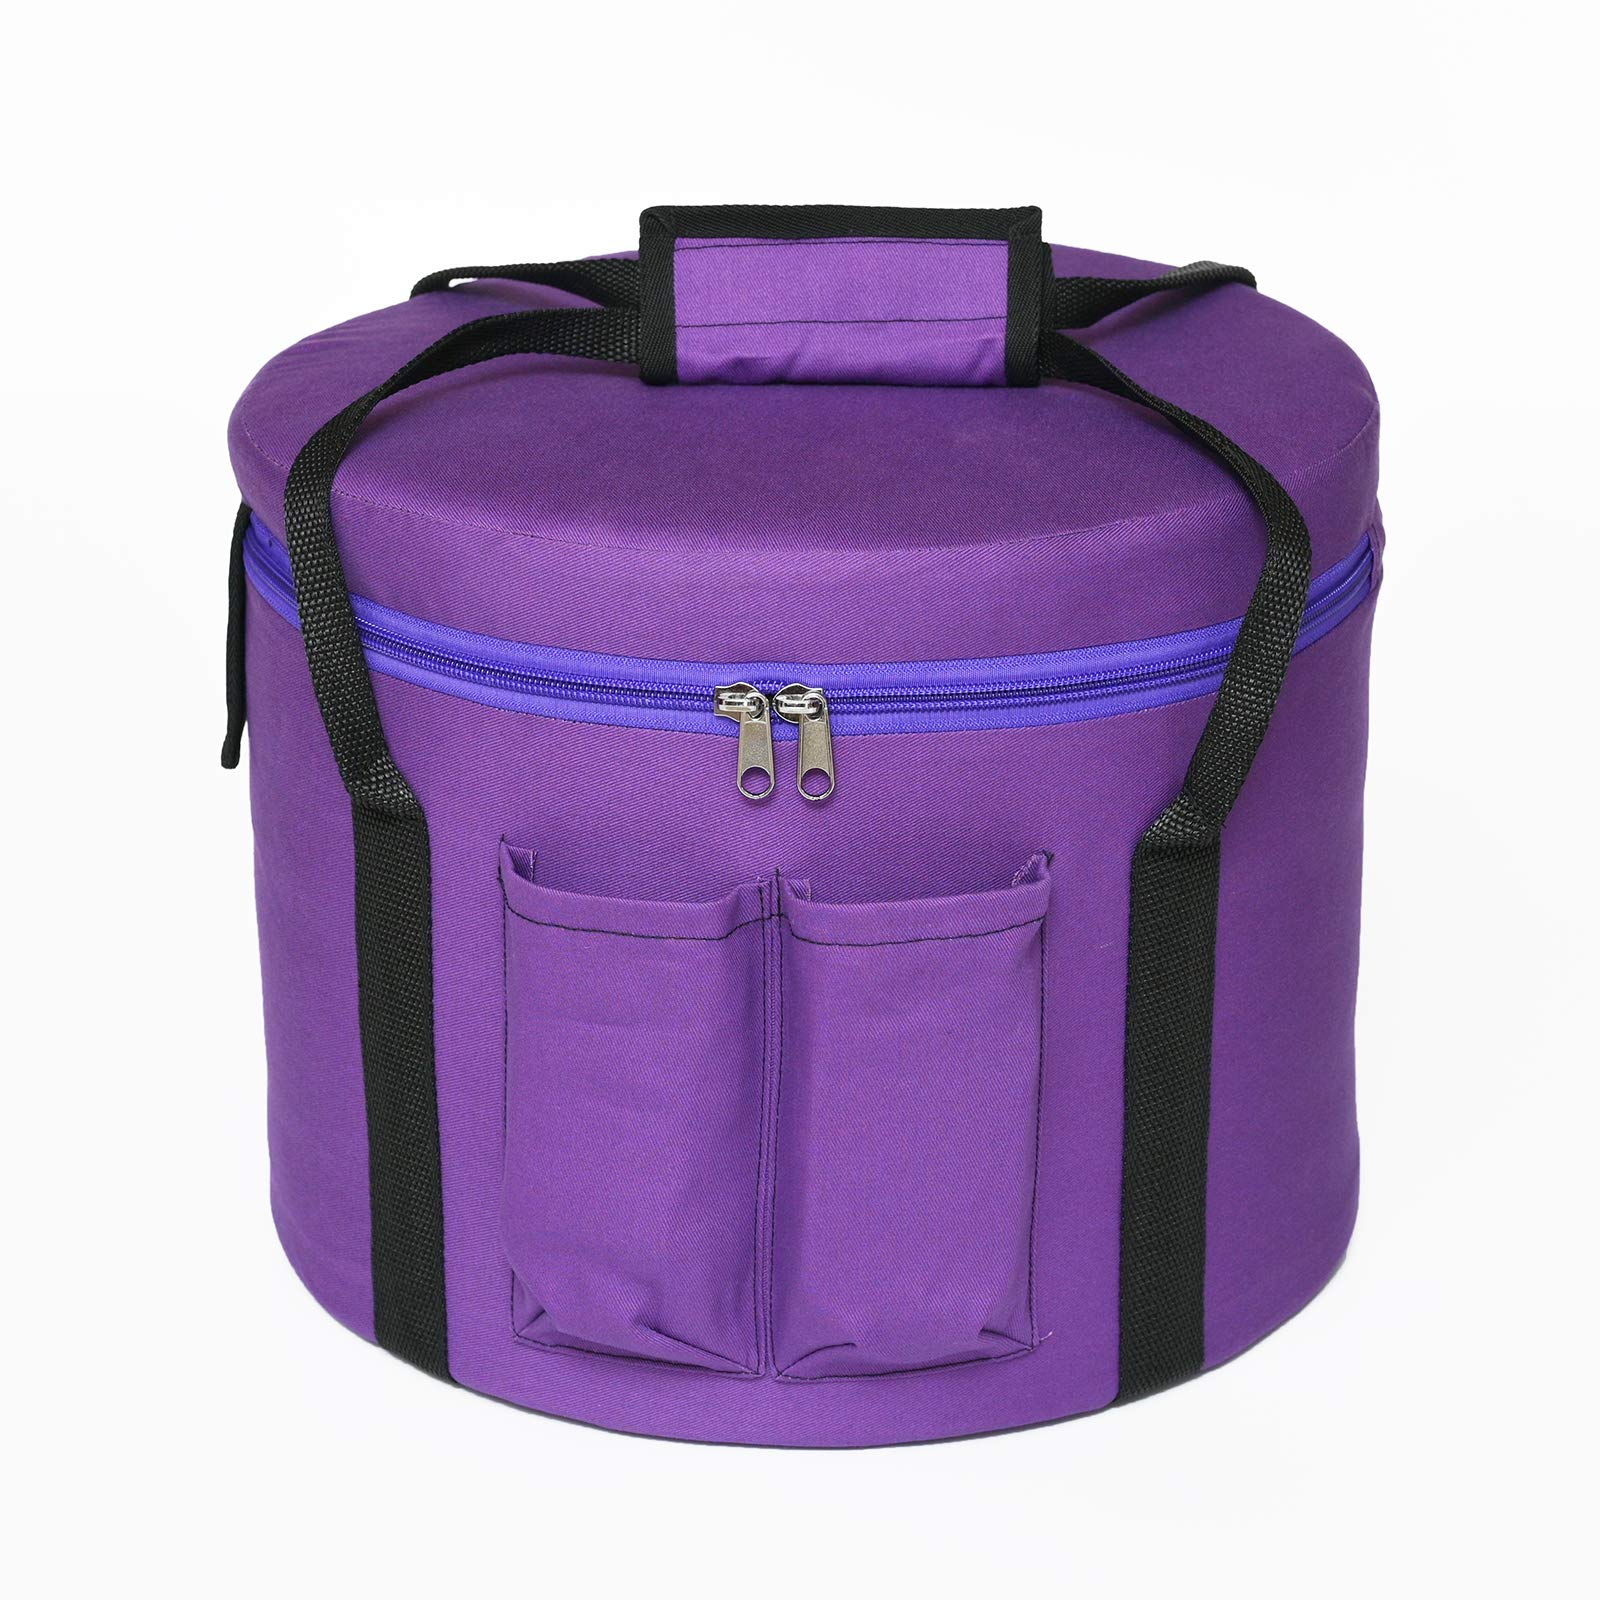 CVNC 14 Inch Purple Color Padded Carrying Case Bag For Crystal Singing Bowl Putting 14 Inch crystal singing bowl